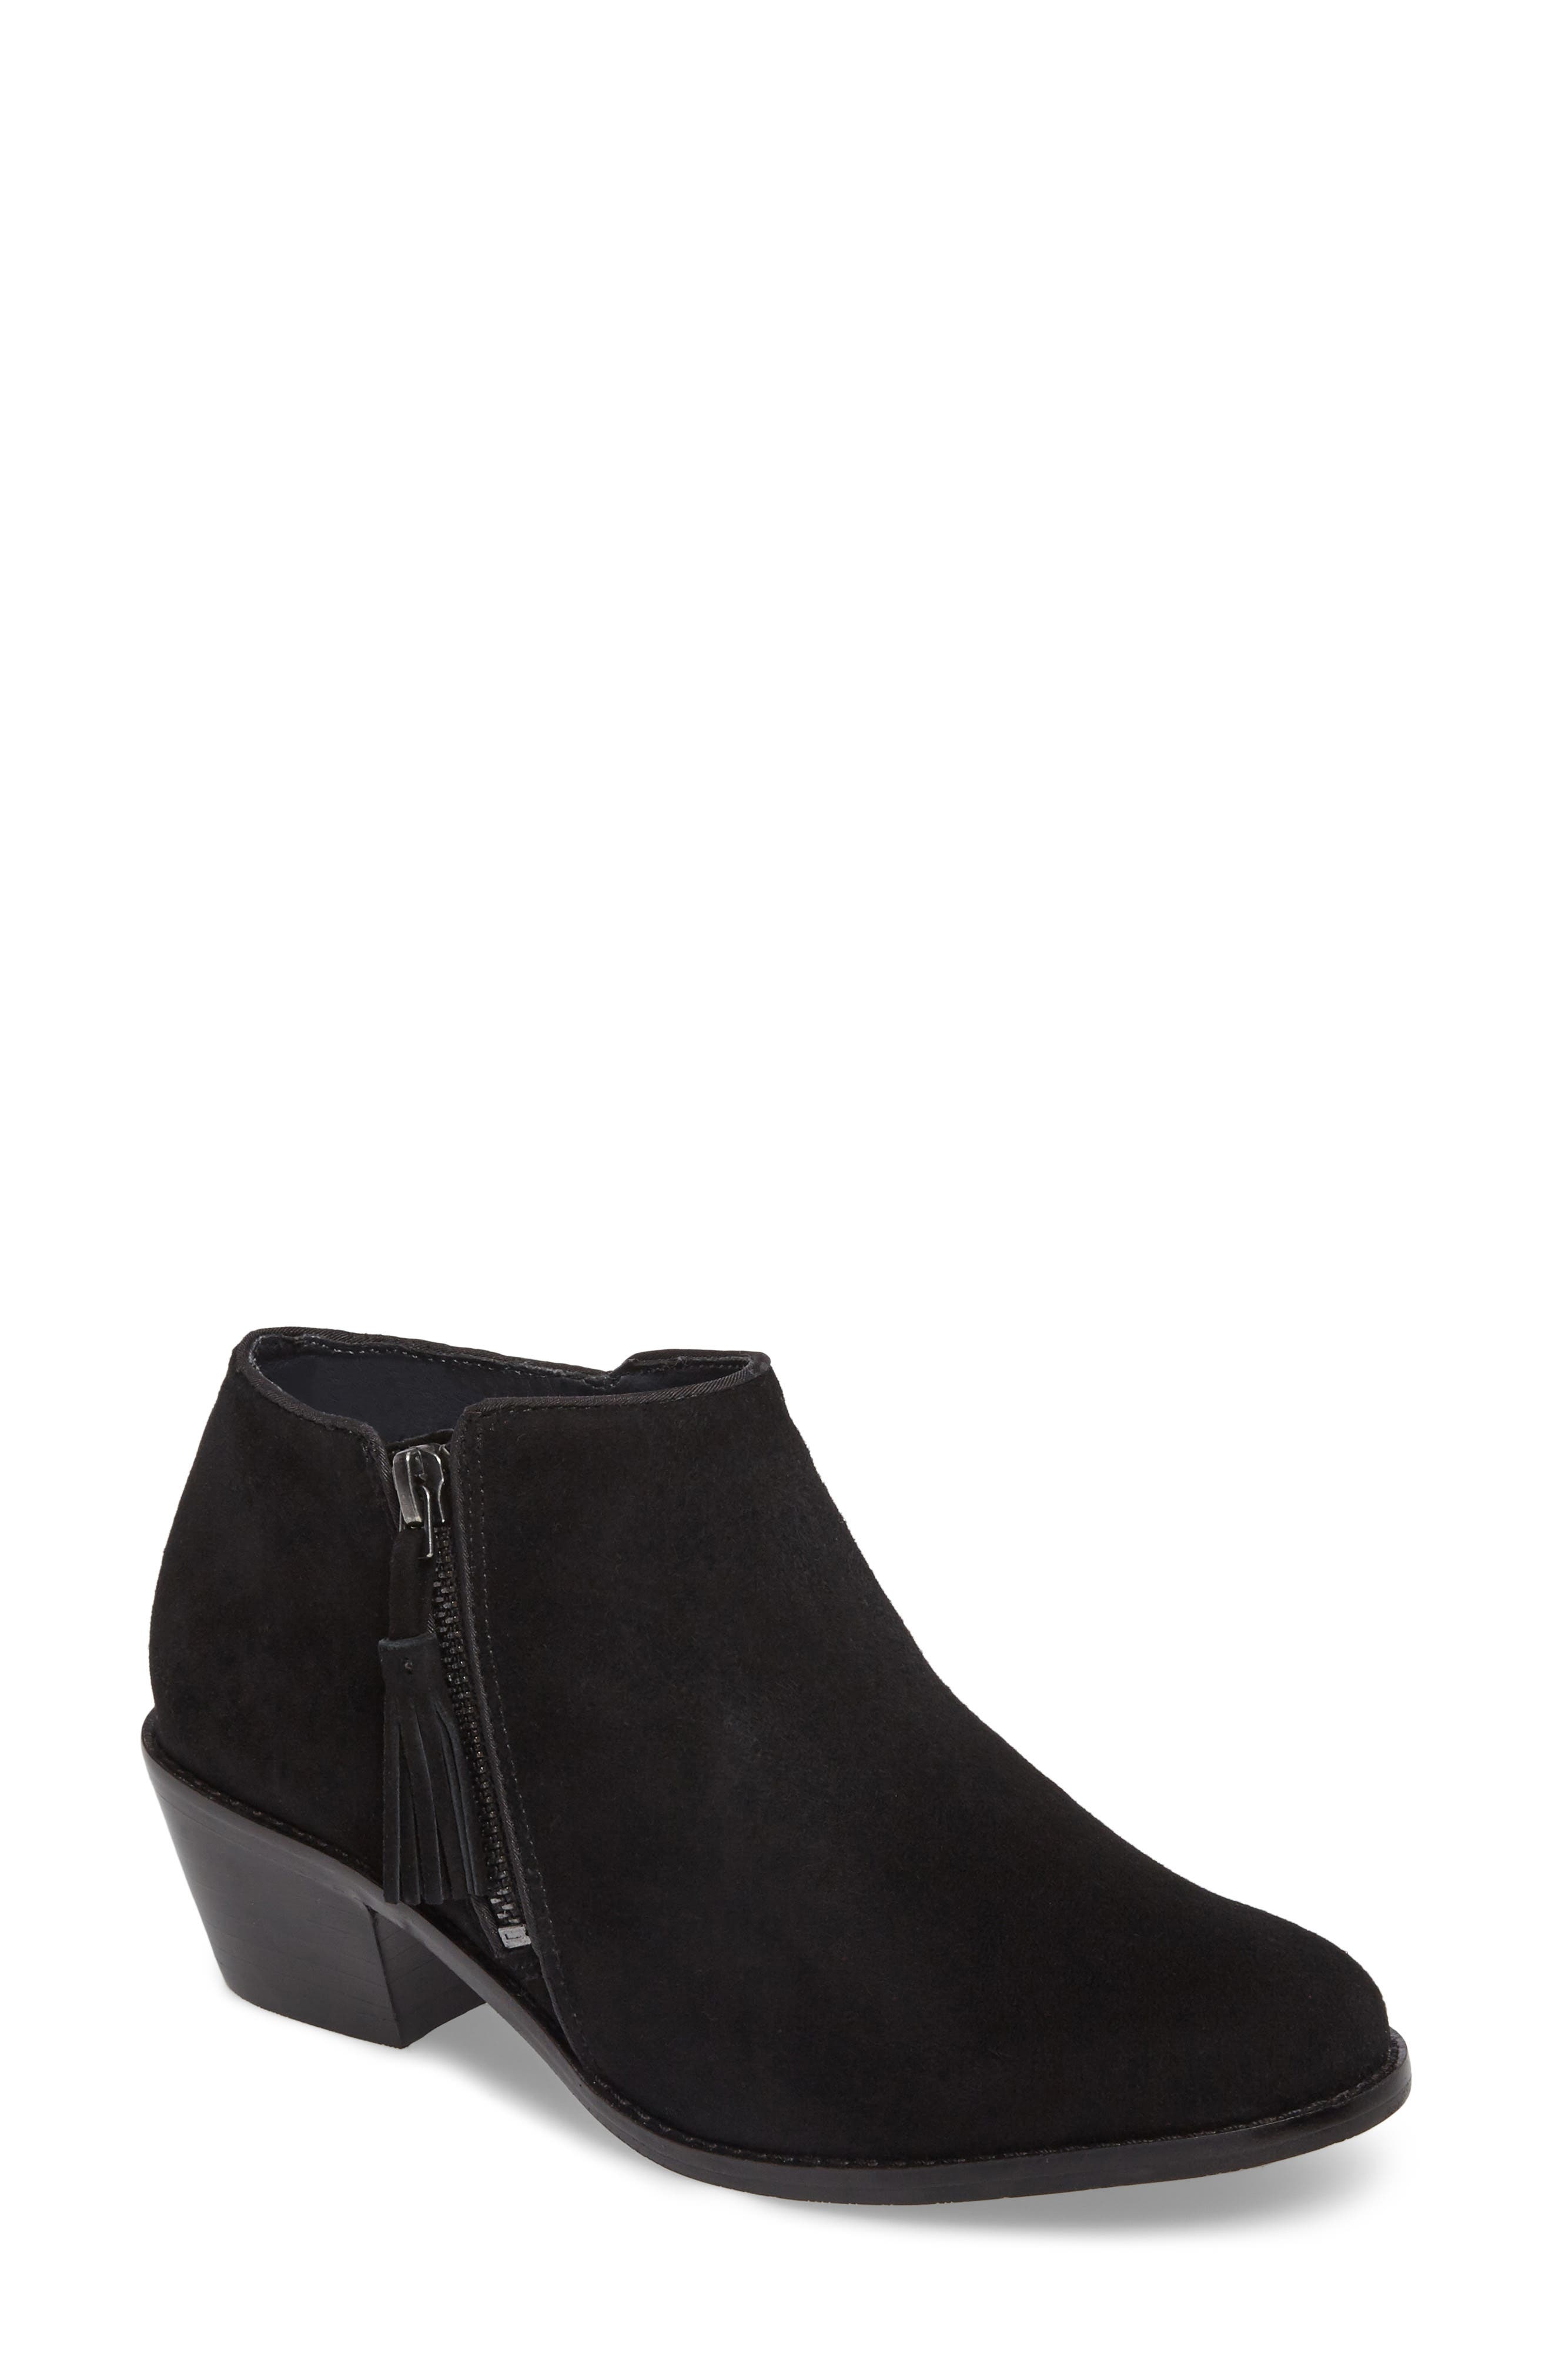 Serena Ankle Boot,                             Main thumbnail 1, color,                             Black Suede